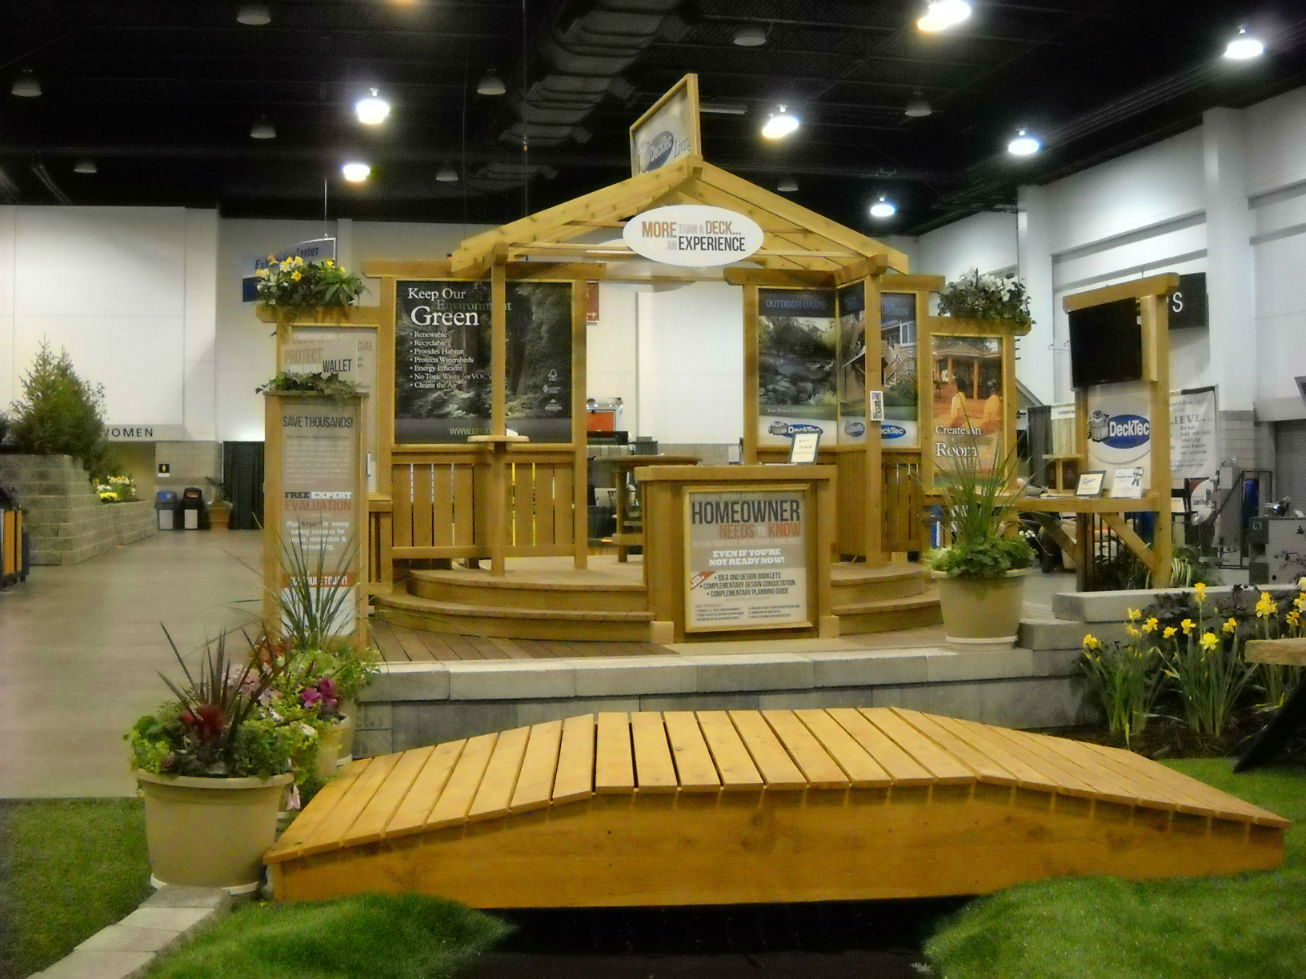 Itu0027s Home Show Time! Are You Ready? We Are Very Excited About Participating  In The Annual Colorado Home And Garden Show For The 24th Consecutive Year.